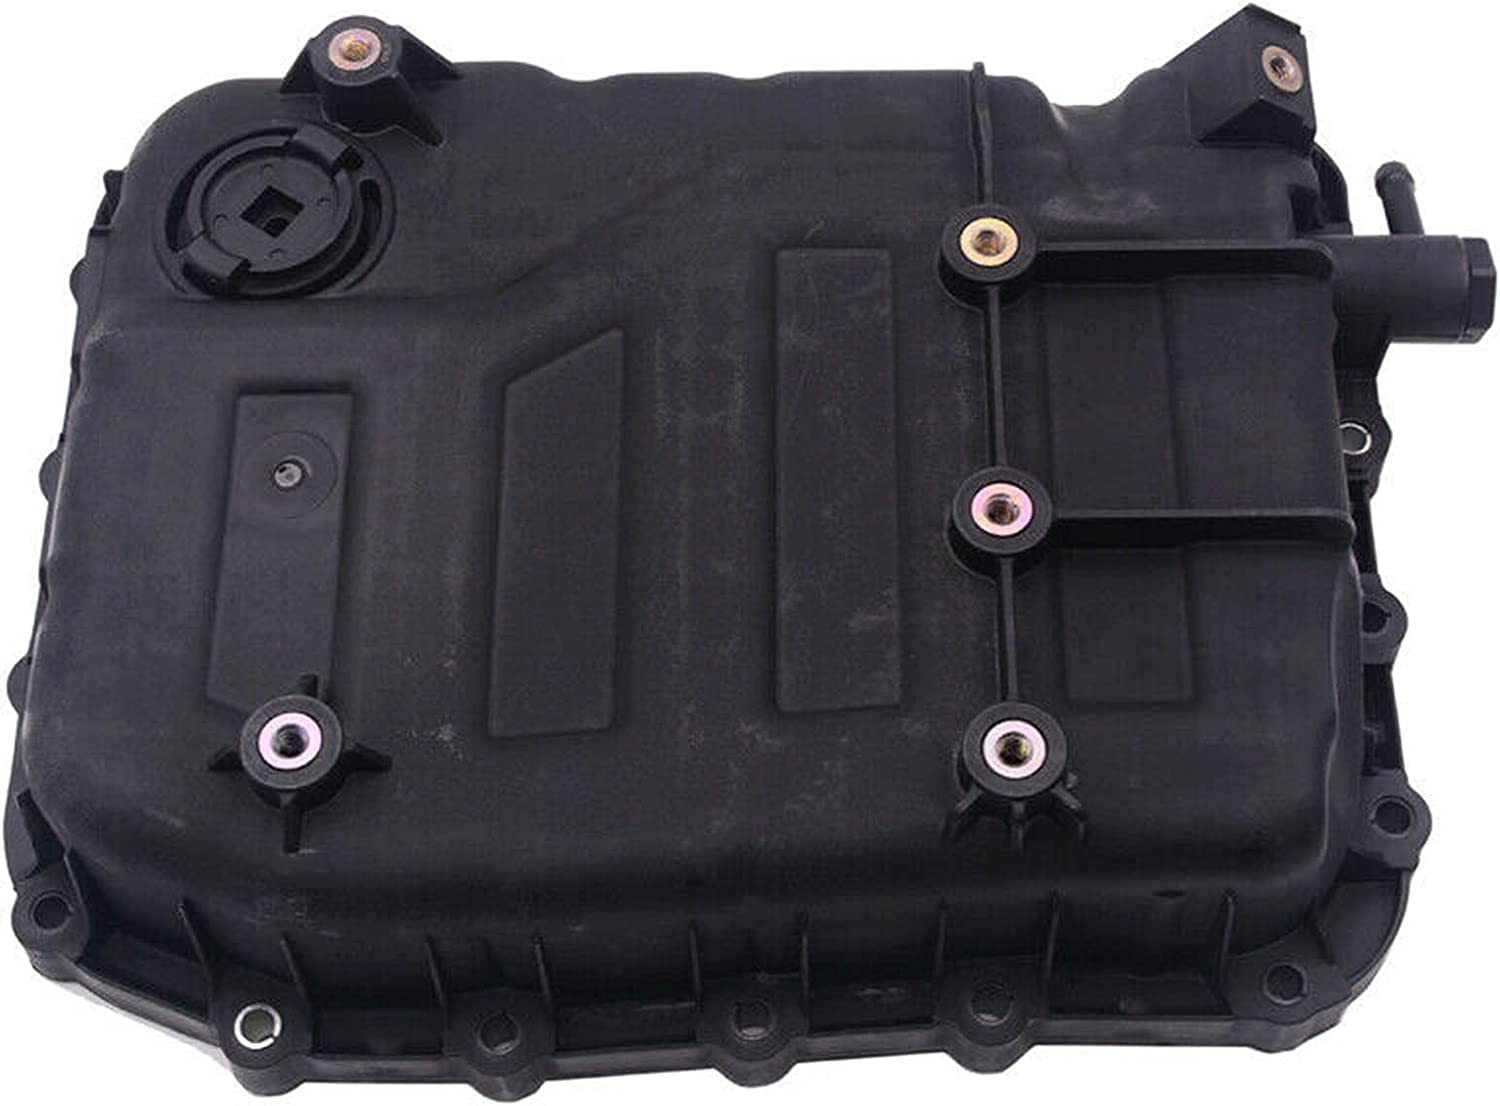 Virginia Beach Mall Esseno OFFicial site New TRANSMISSION OIL PAN Compatible SONAT with 452803B851